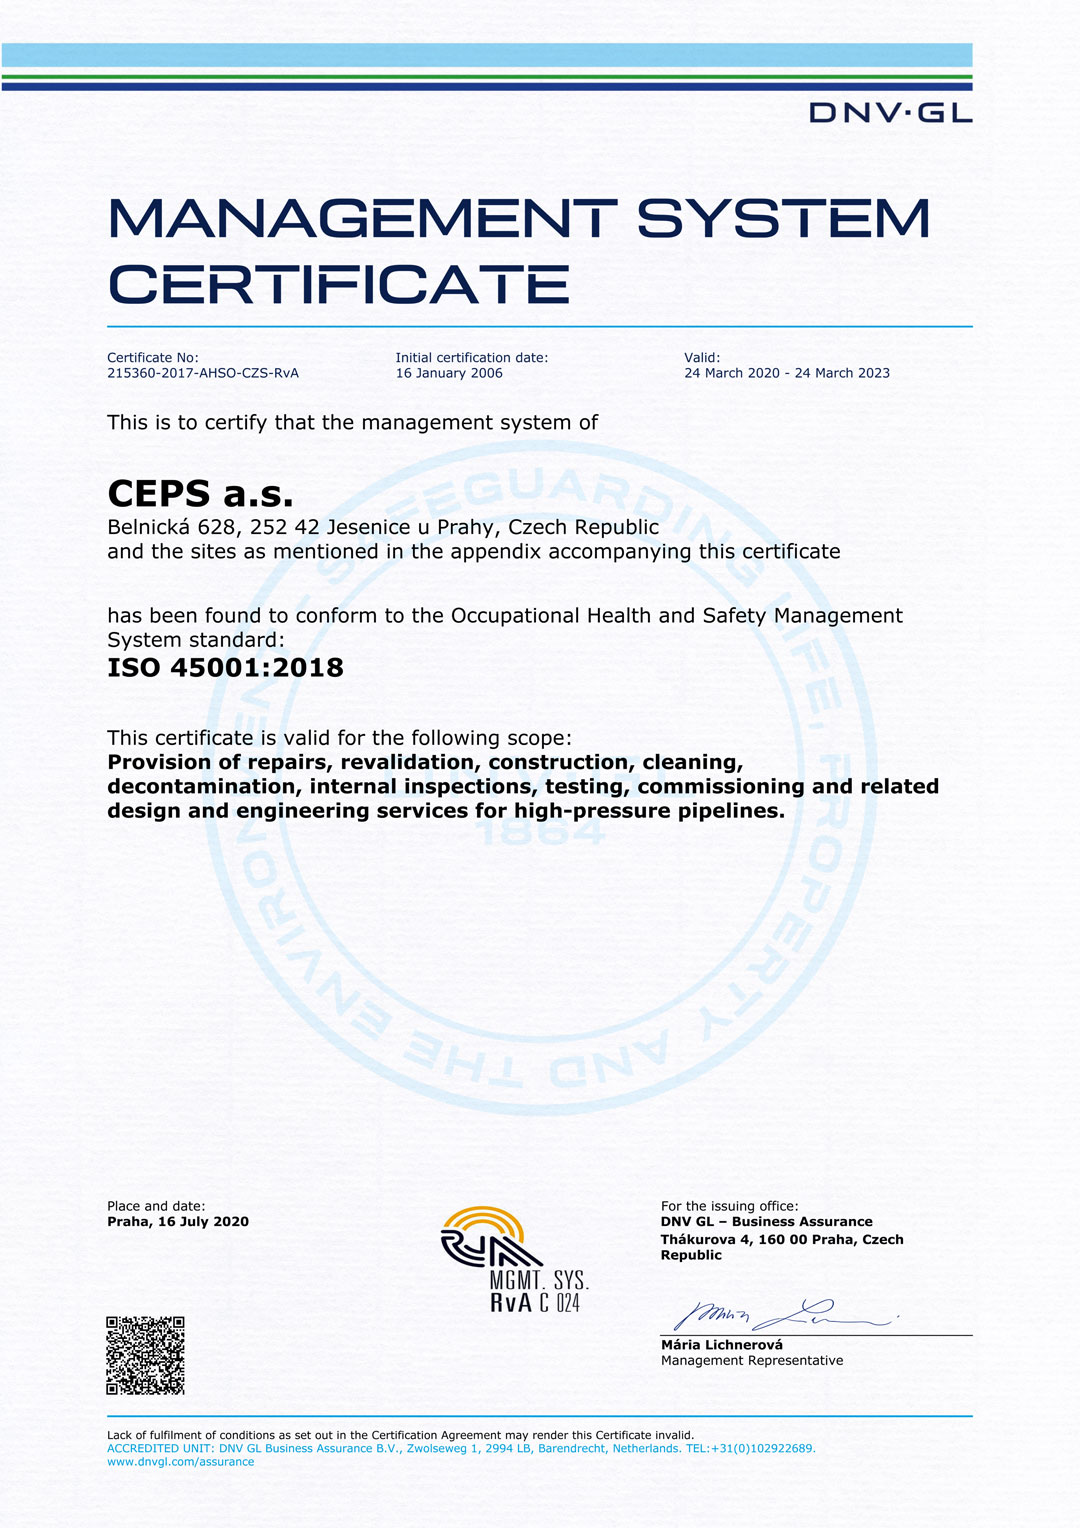 ISO 45001:2018 Management System Certificate (Certificate No. 215360-2017-AHSO-CZS-RvA)